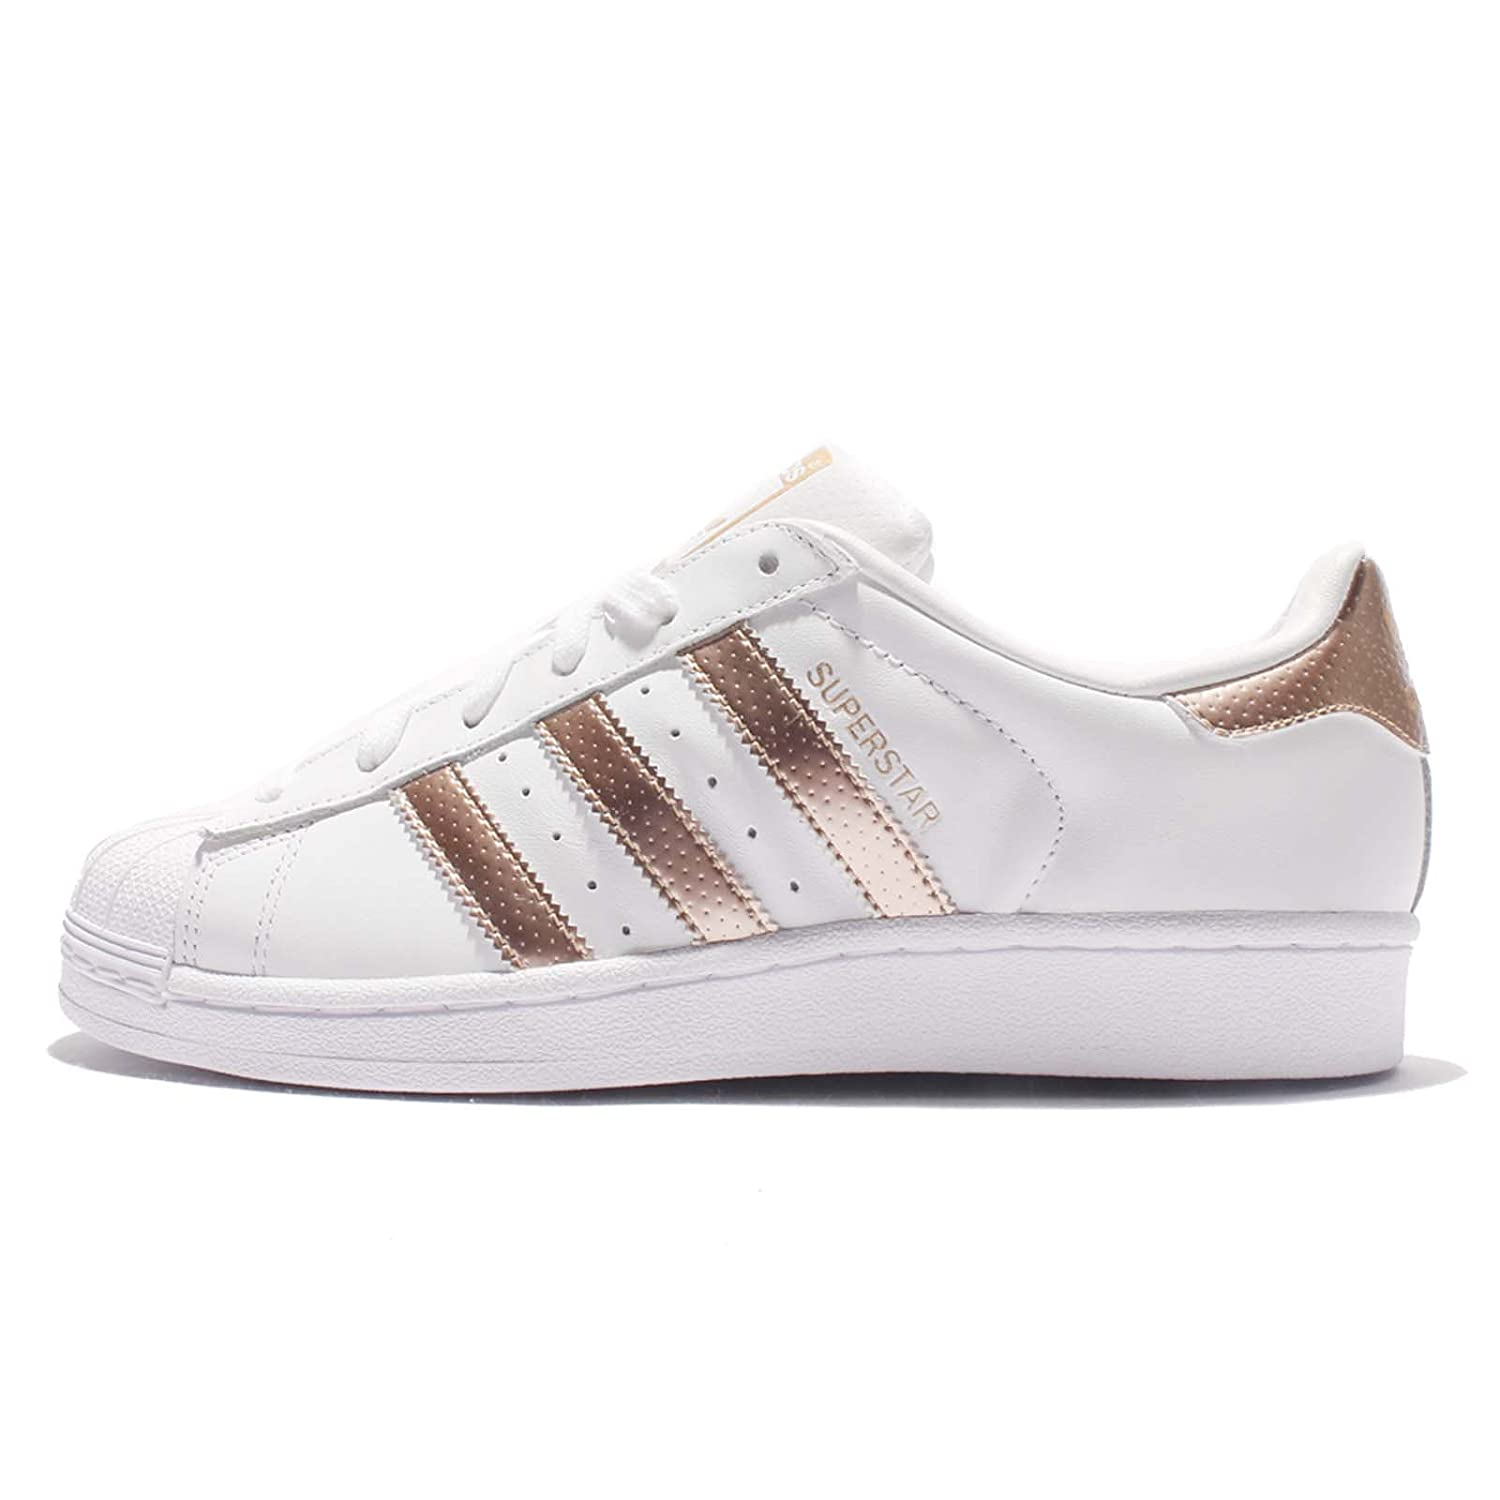 énorme réduction 487bf 8da5d Adidas Superstar Women's White Rose Gold BB1428 UK 5.5 ...